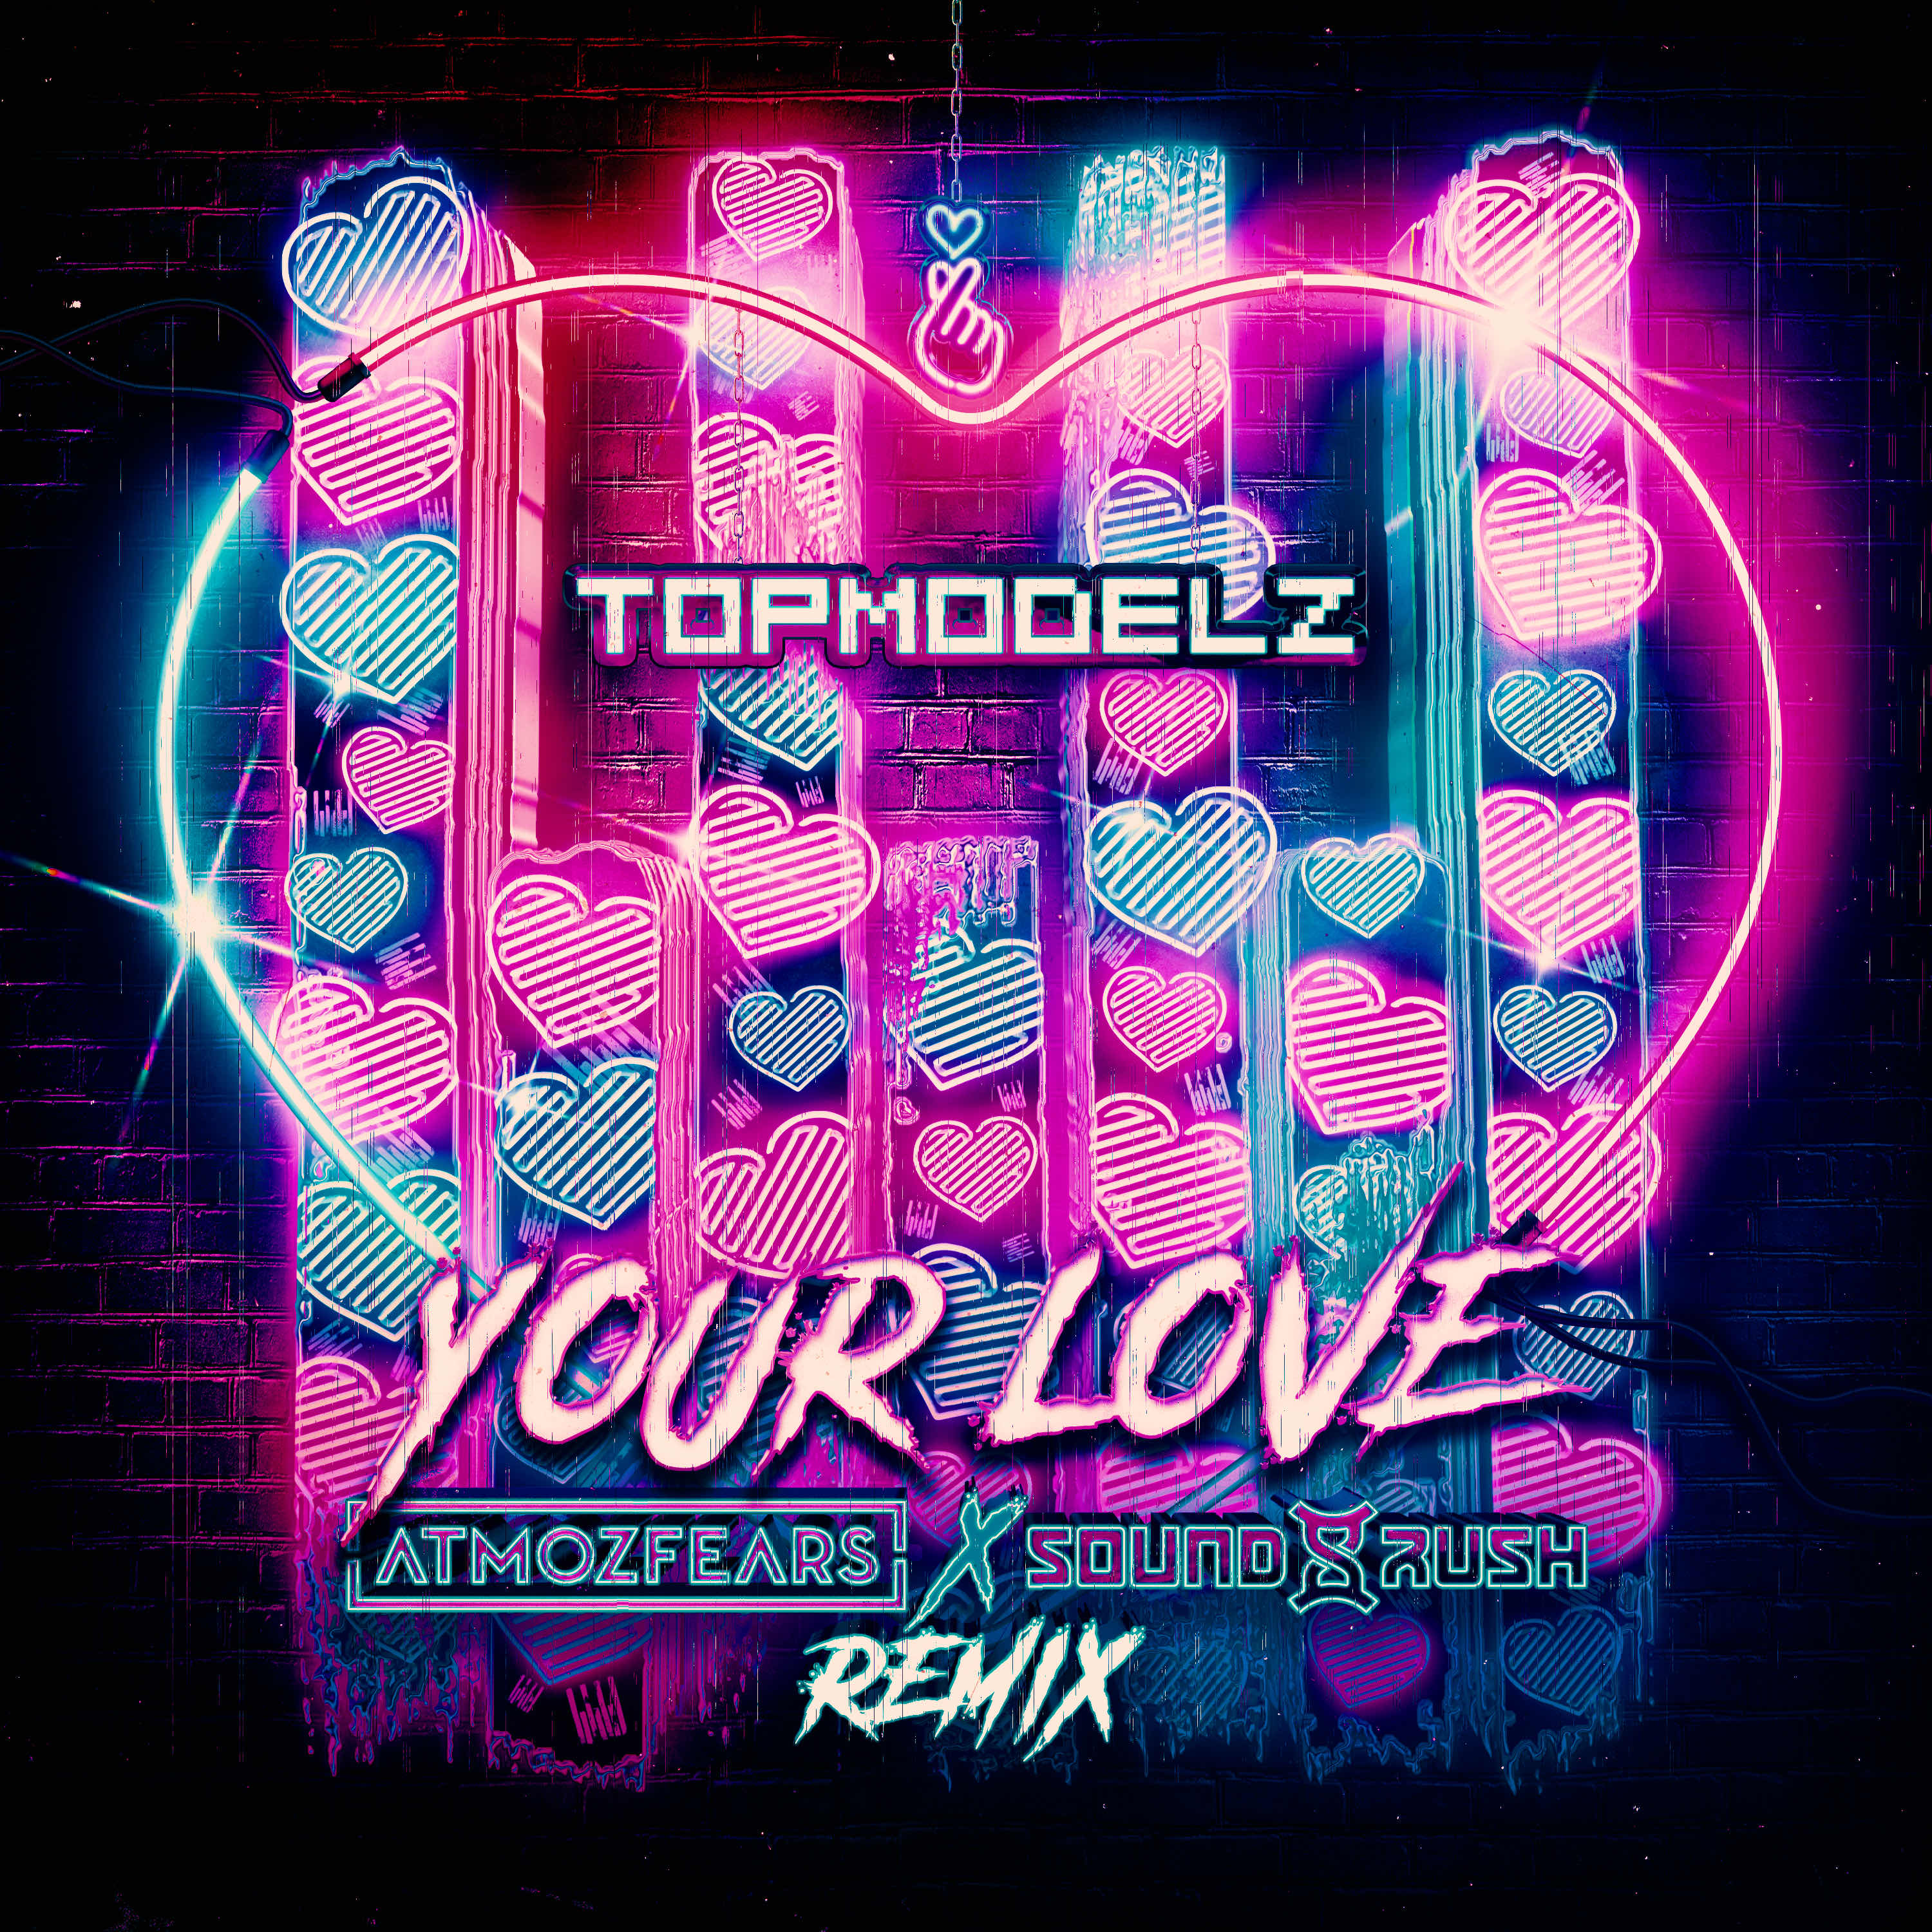 Your Love (Sound Rush & Atmozfears Remix) Image